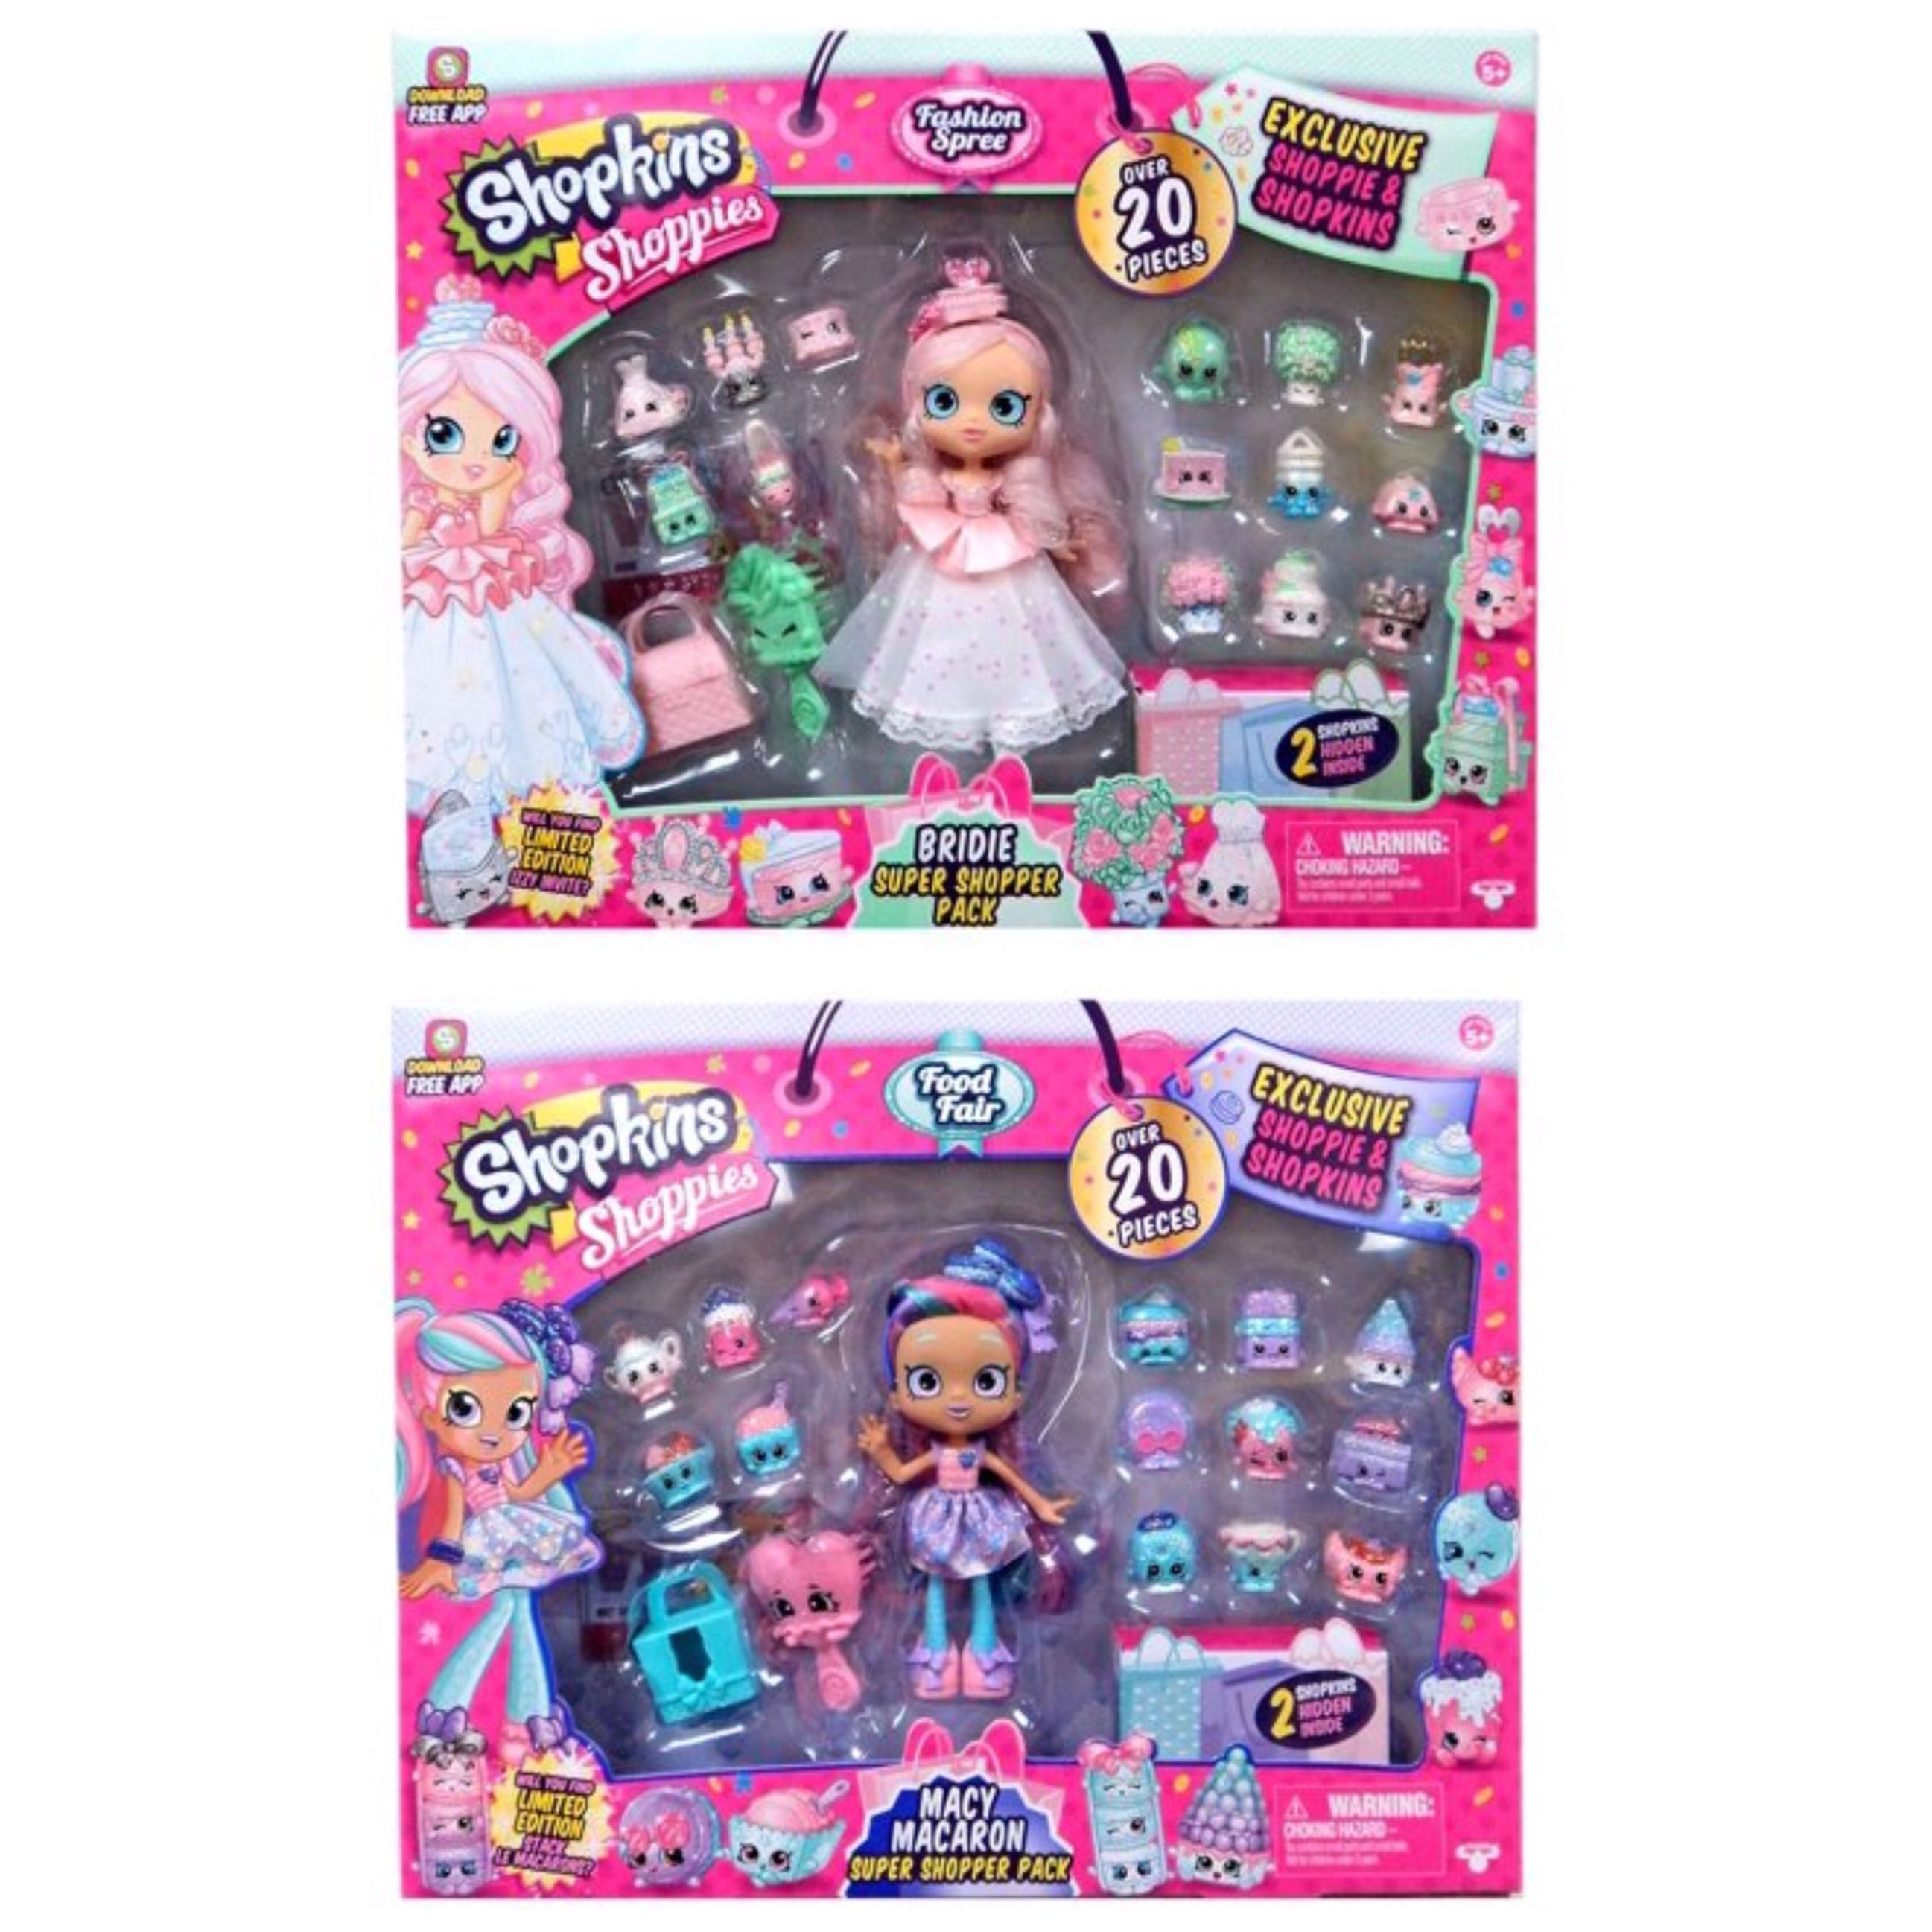 Shopkins Shopper Pack Macy Macaron and Bridie Shoppies Doll Bundle